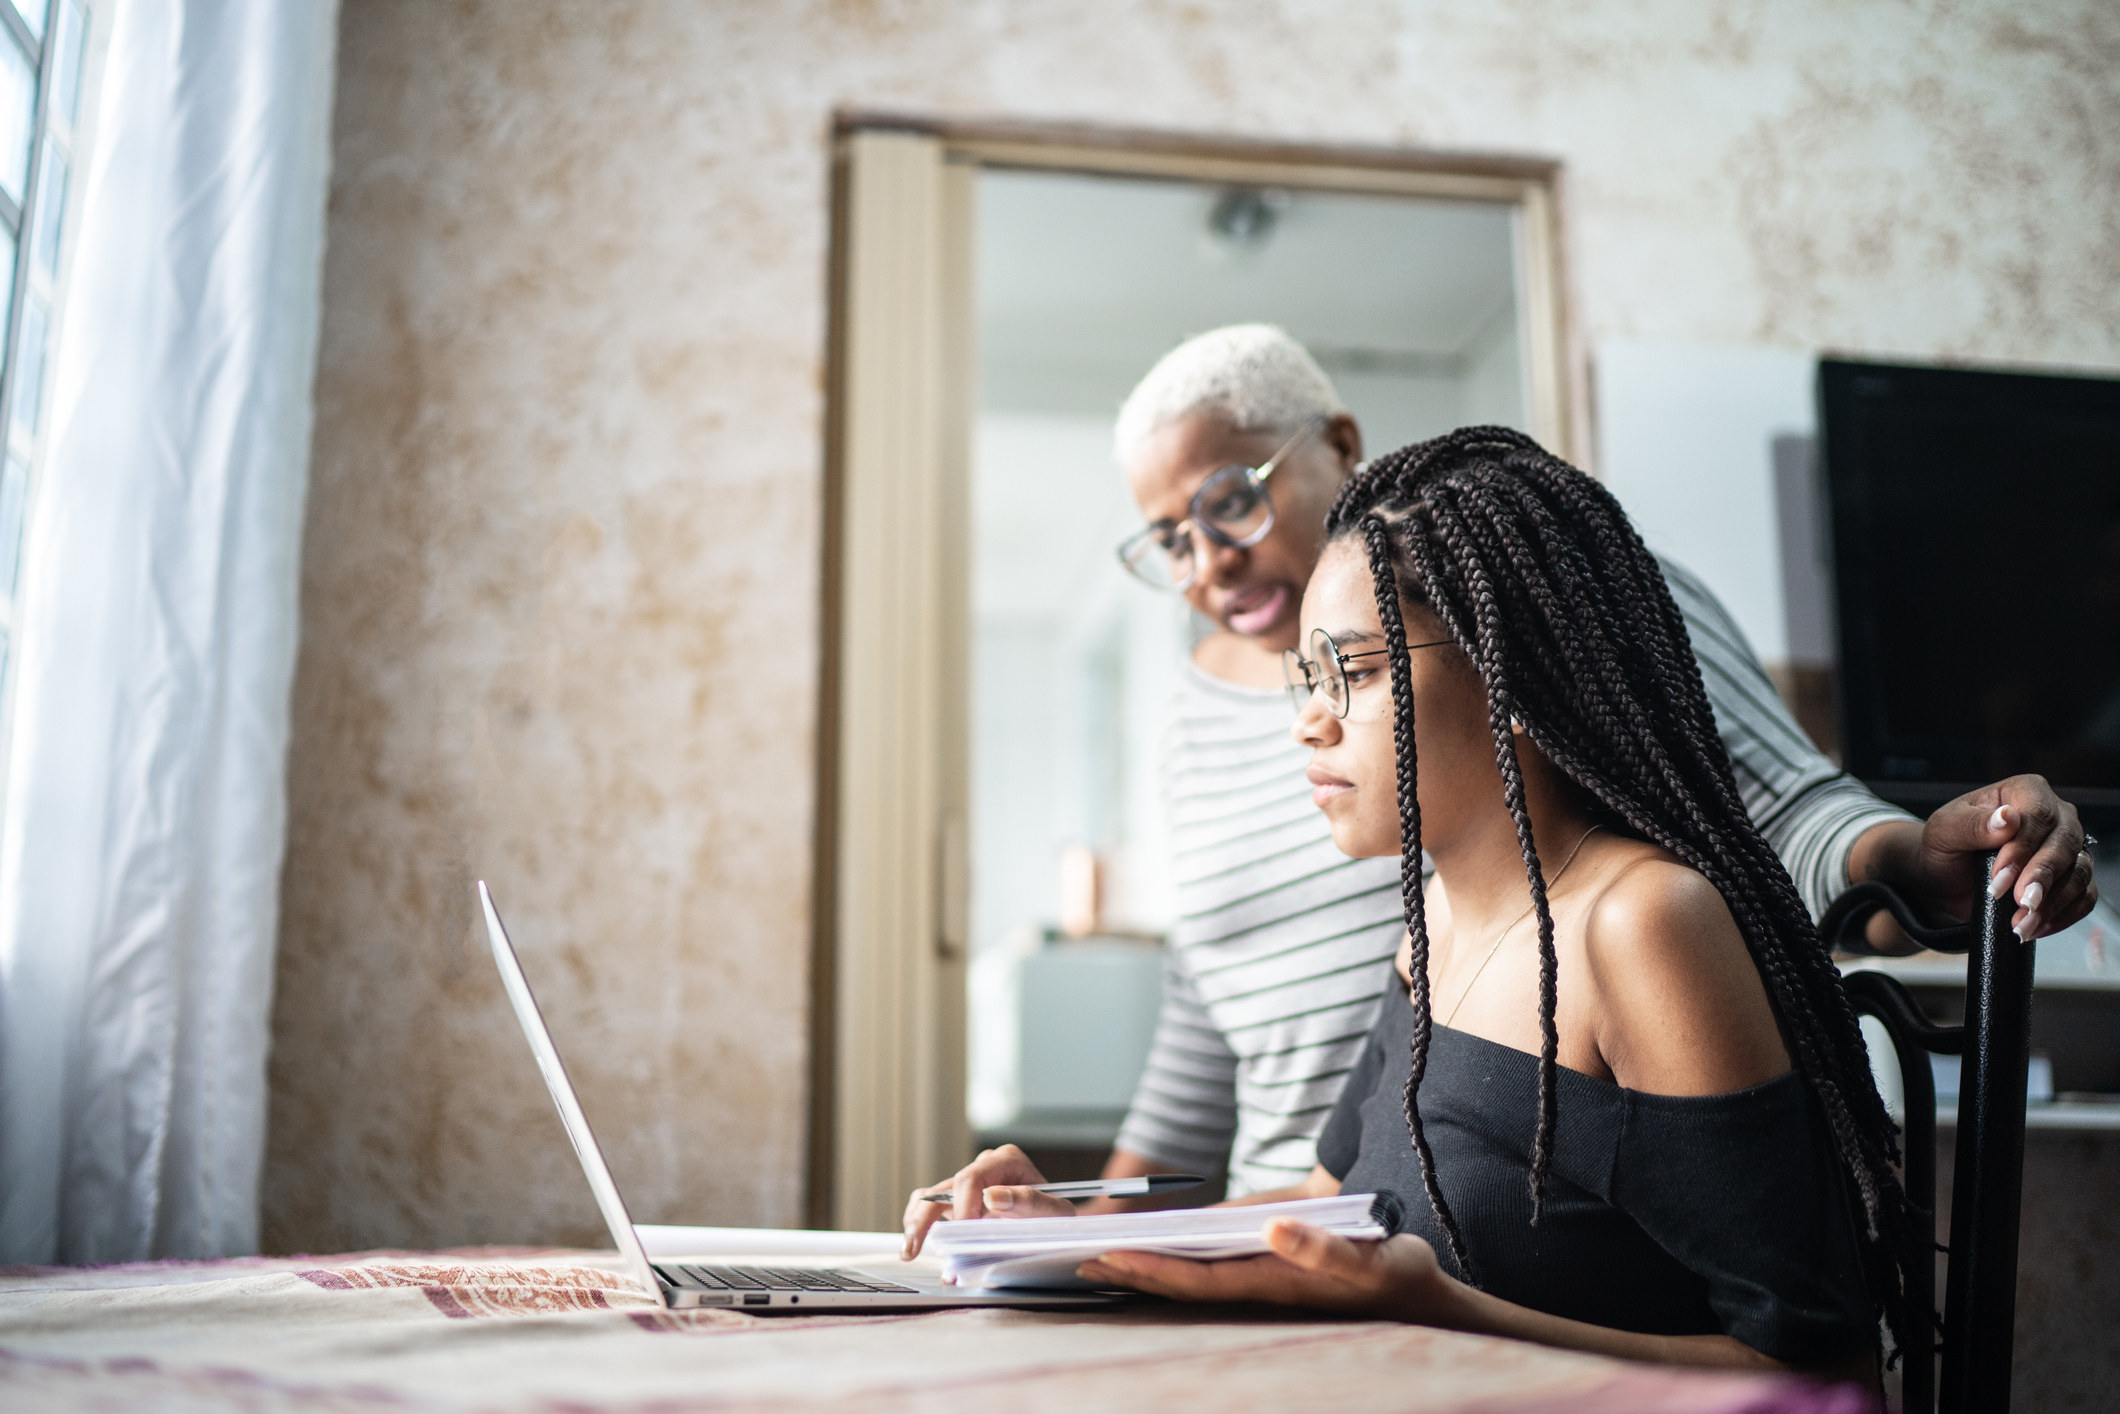 A young Black woman with braids and eyeglasses looks at a laptop and as an older Black woman looks over her shoulder